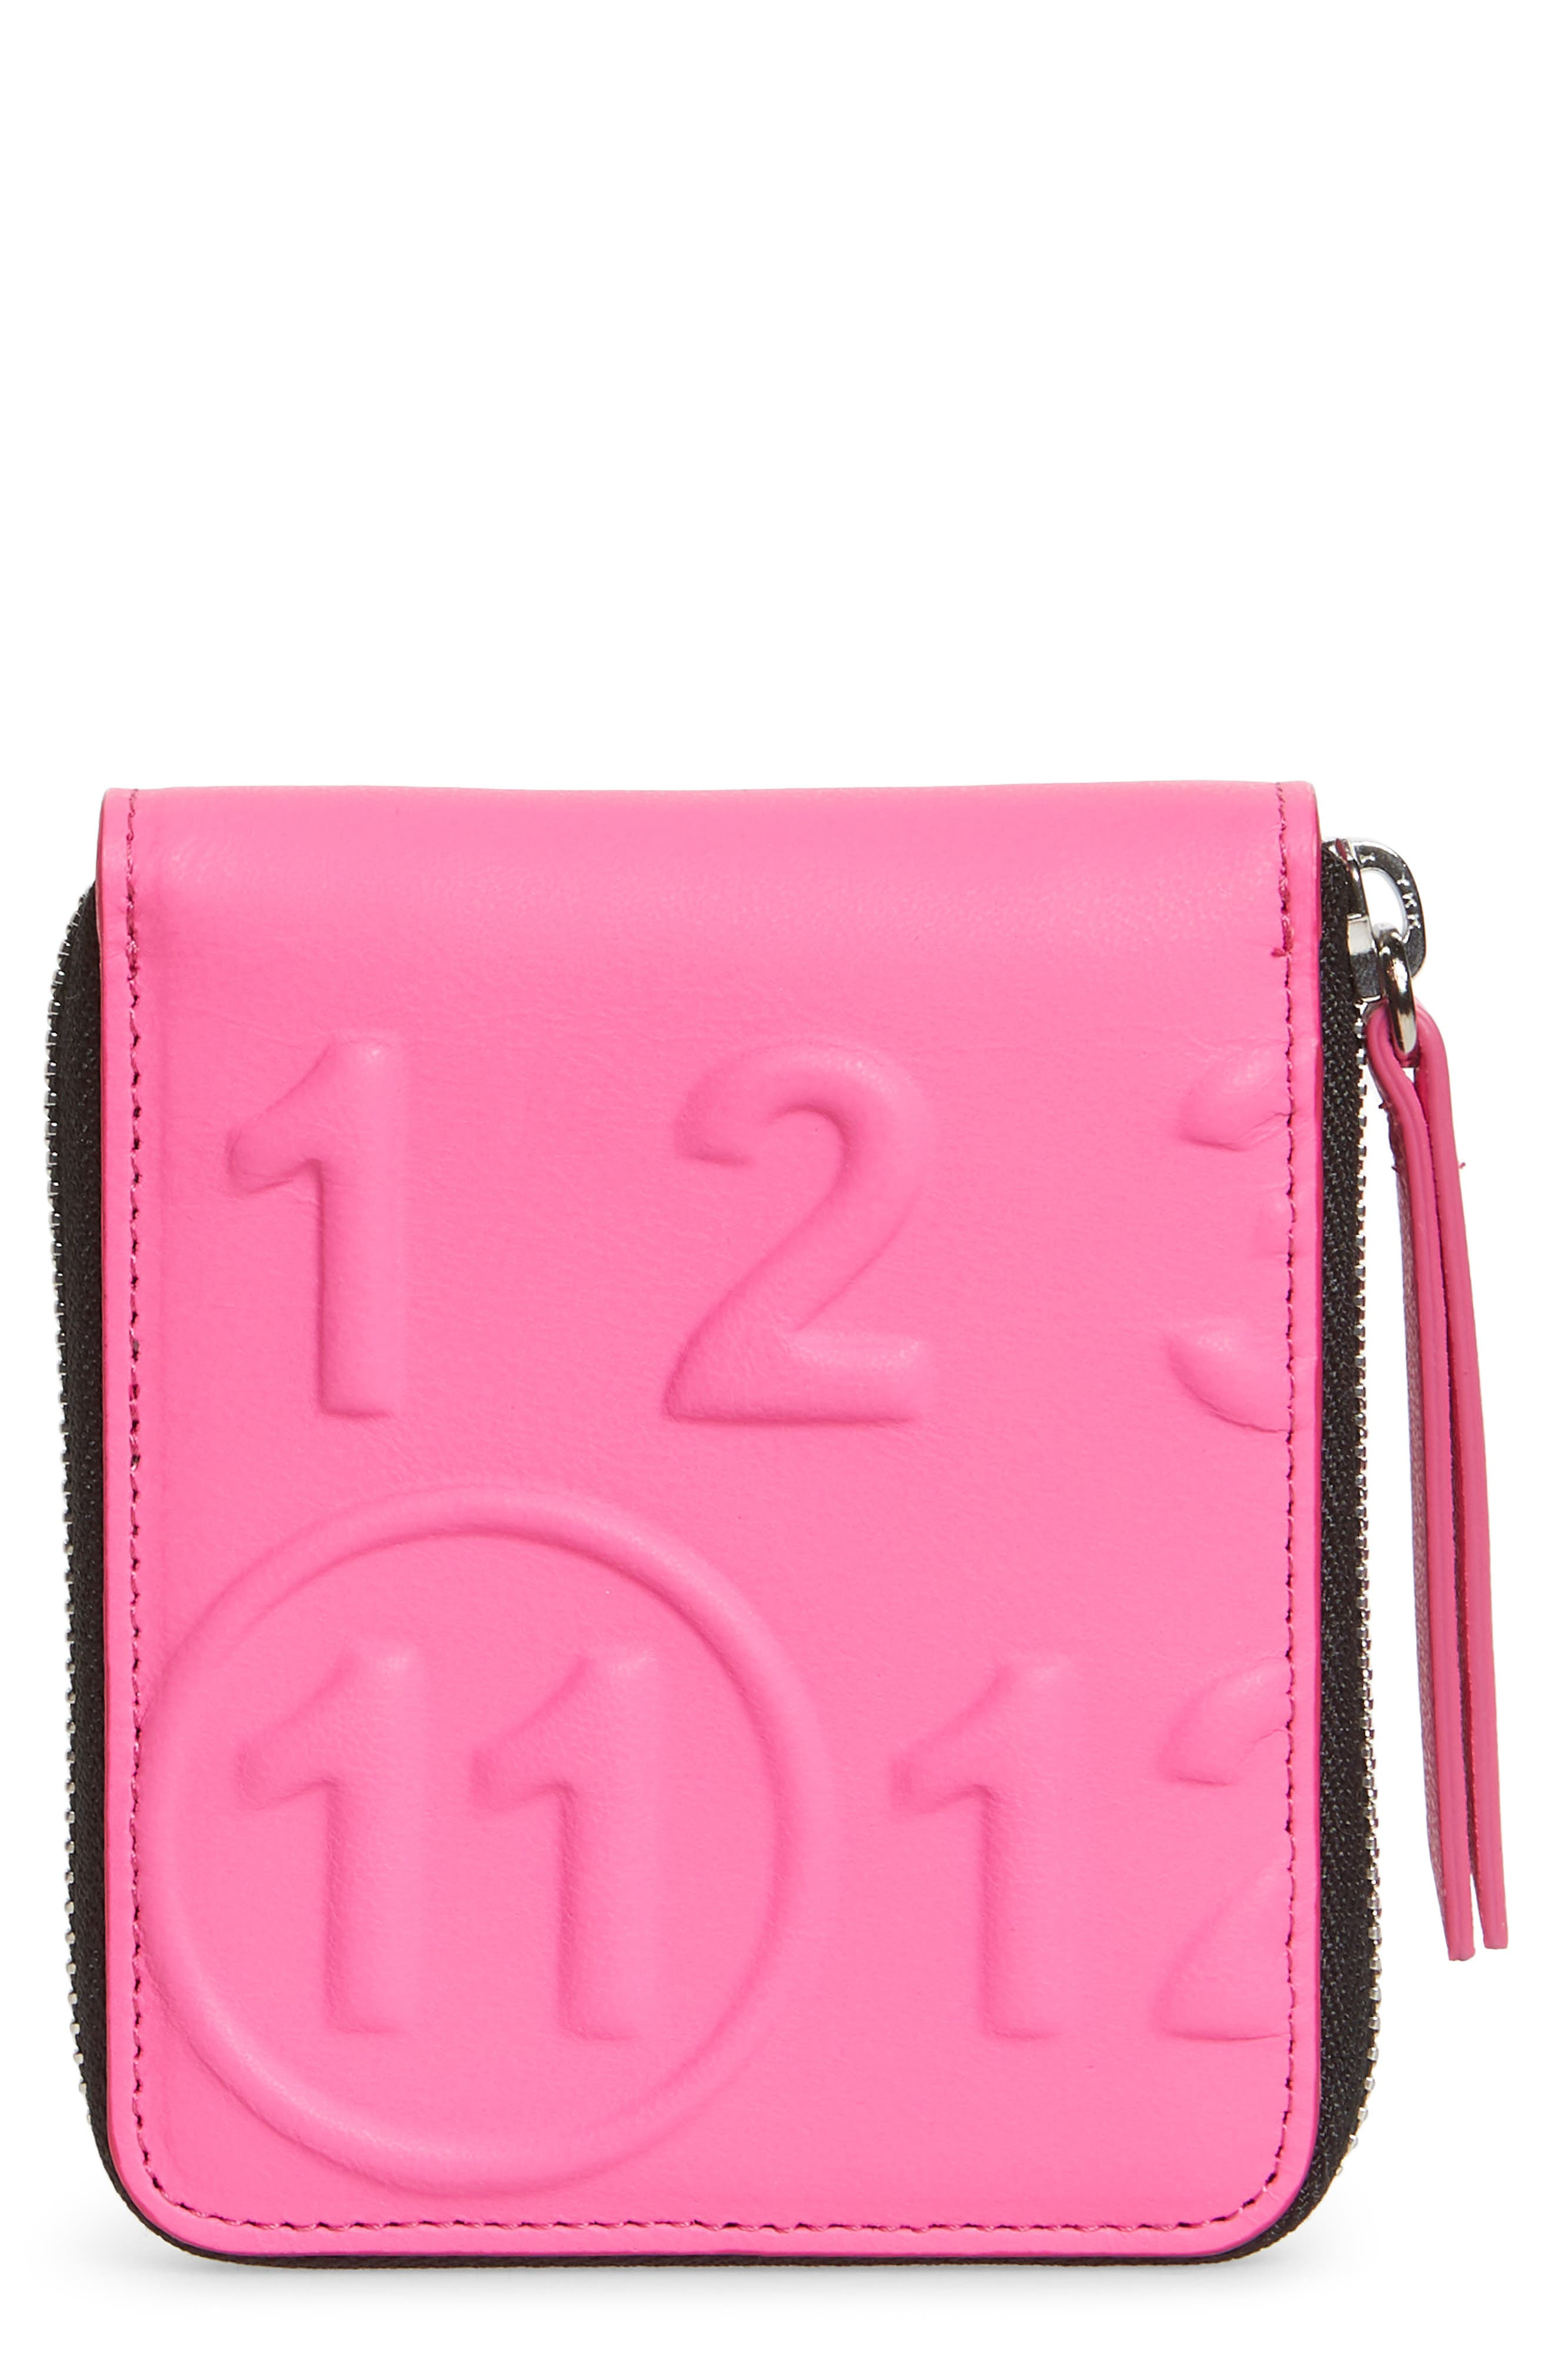 Faux Leather French Wallet,                             Main thumbnail 1, color,                             PINK